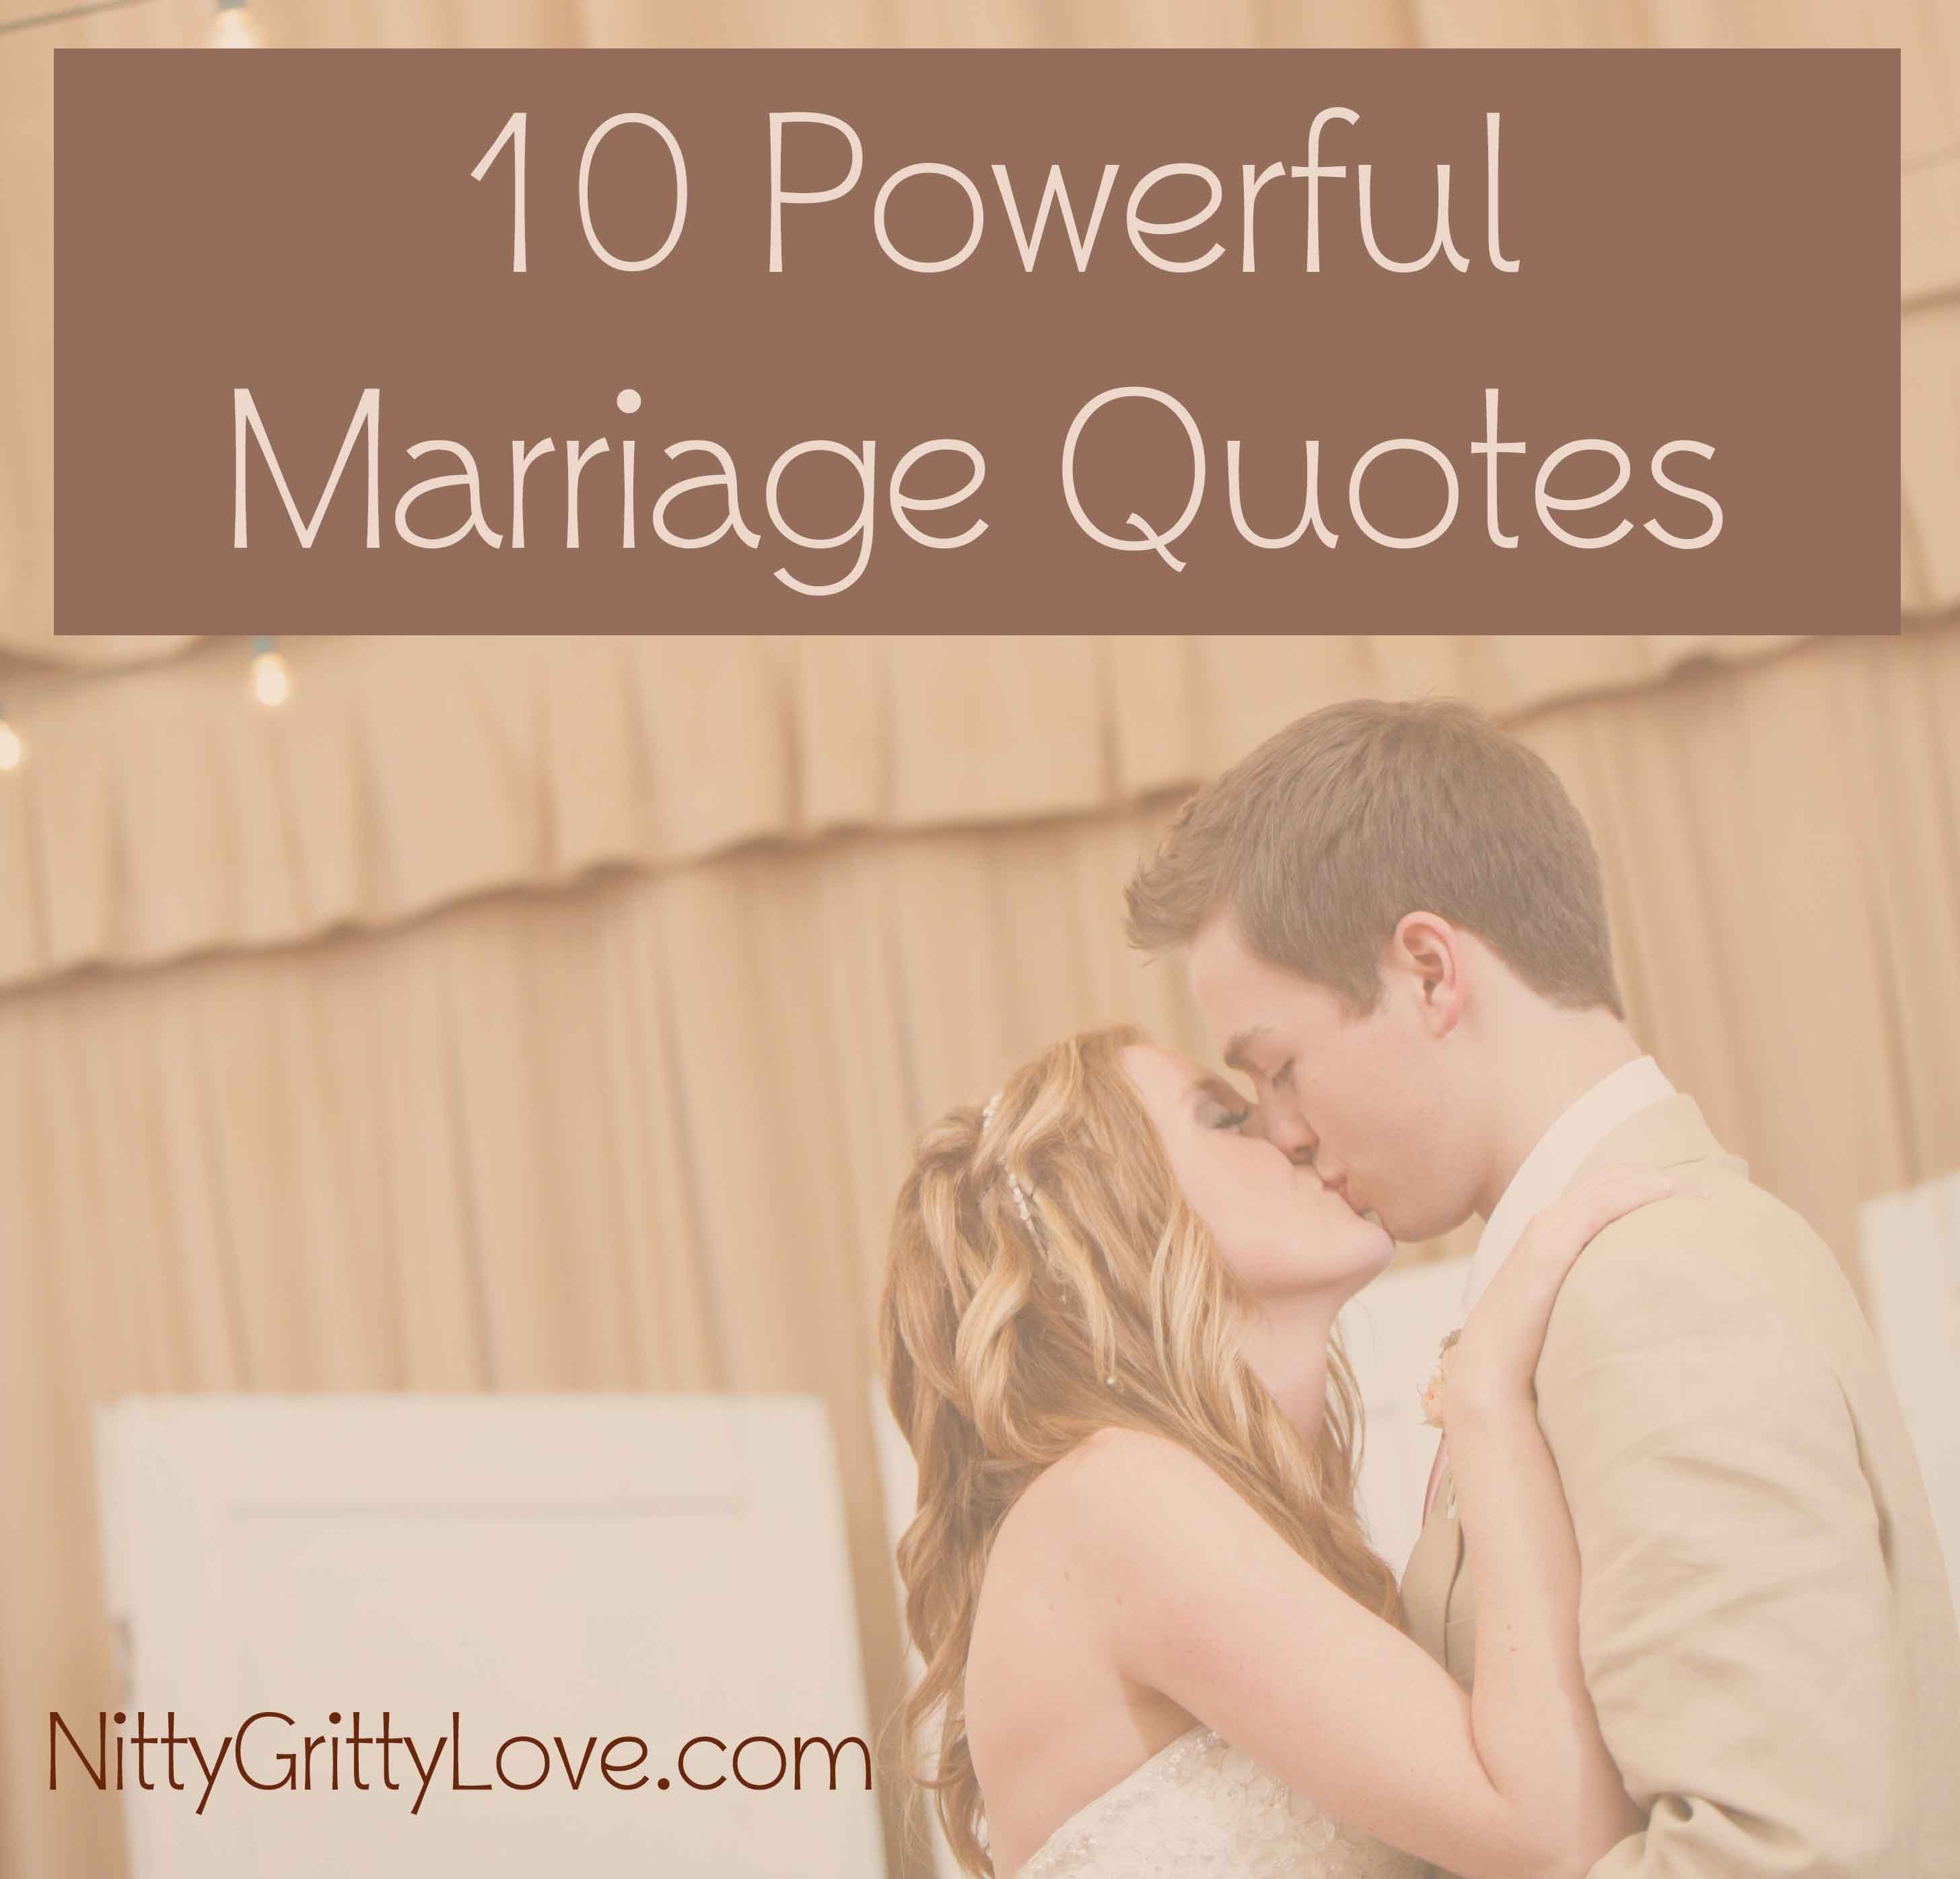 Small Wedding Quotes: 10 Powerful Marriage Quotes